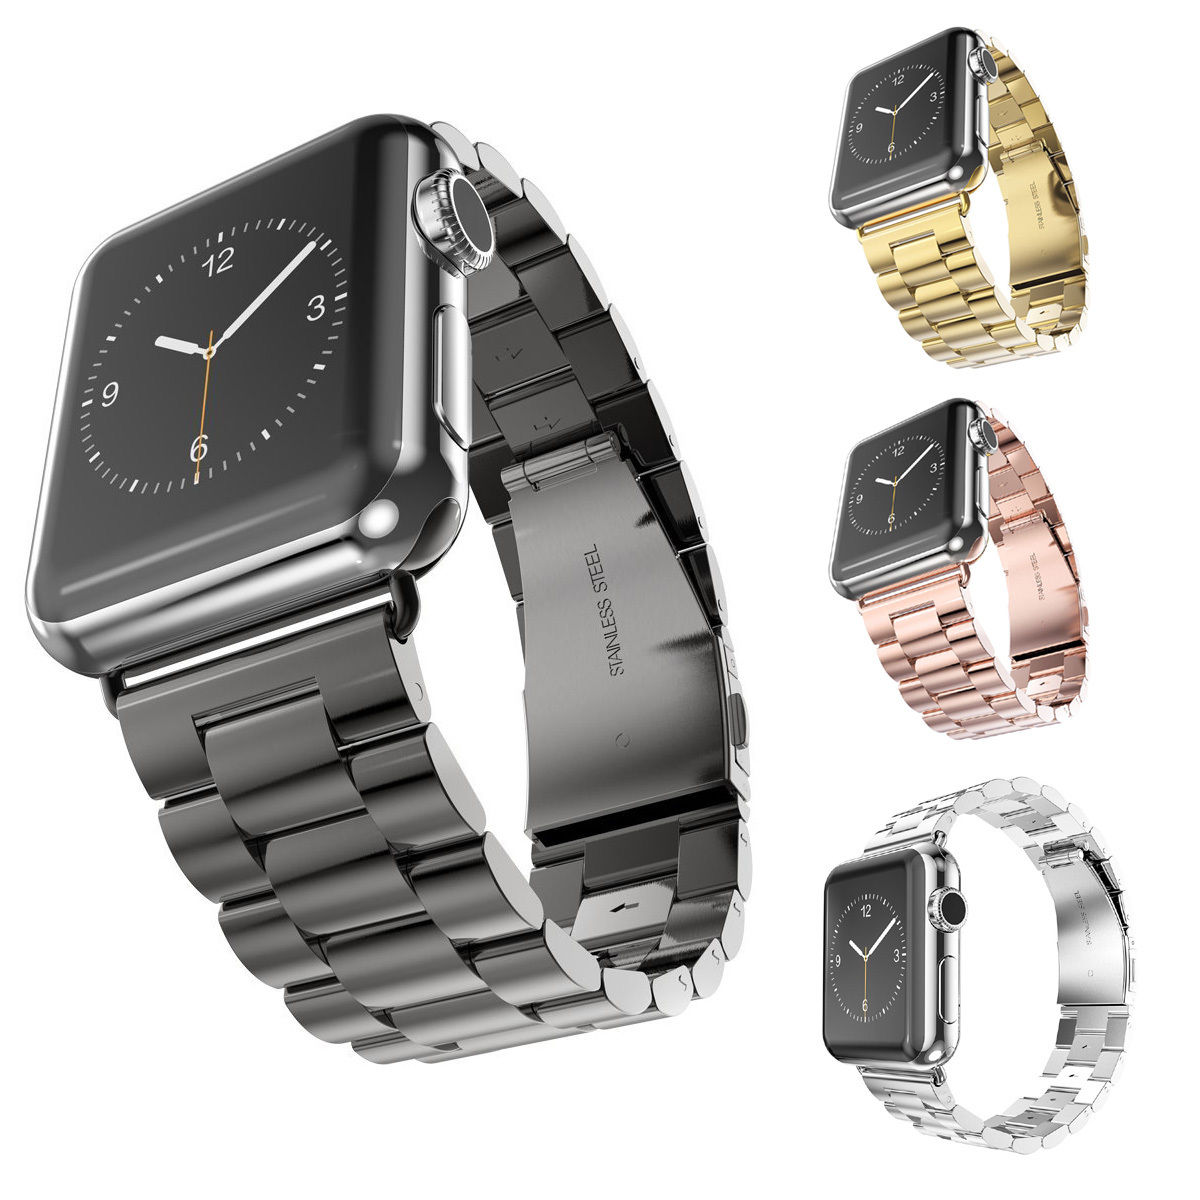 Stainless Steel Watch Band For iWatch Apple Watch Band Series 1 2 3 Strap Link Bracelet 38mm 42mm Classical Lock with Adapter fohuas luxury stainless steel link bracelet band for apple watch series 1 2 band iwatch stainless steel strap 42mm with adapters